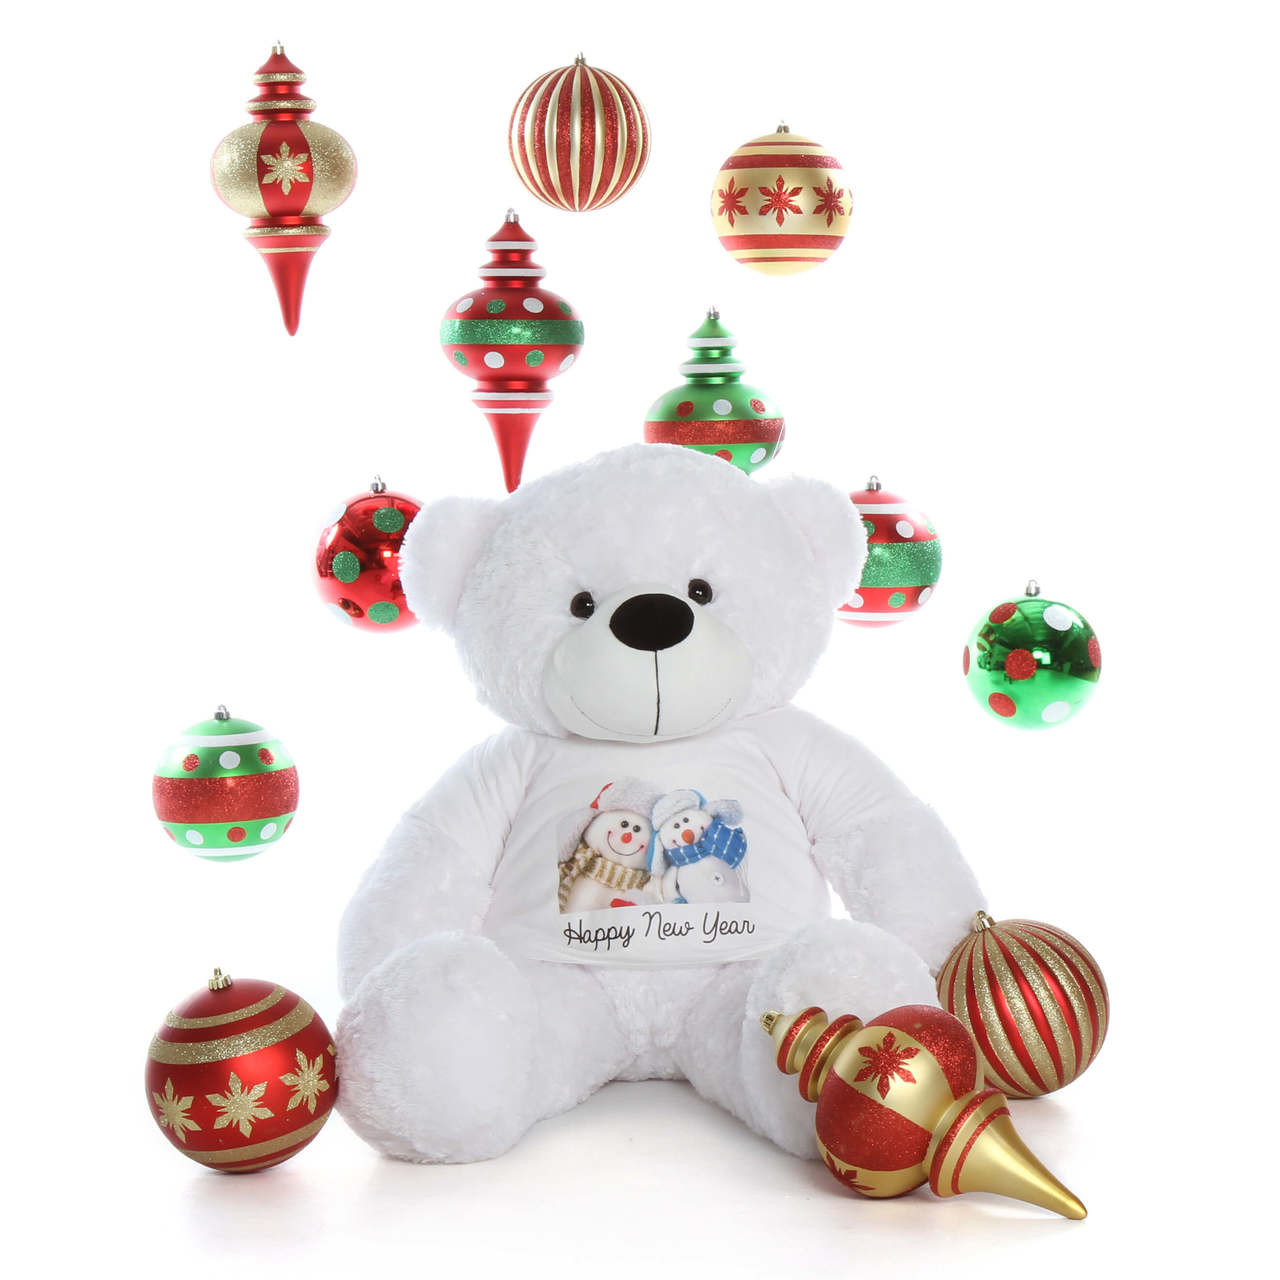 48in White Fur Giant Teddy in Happy New Year T-Shirt